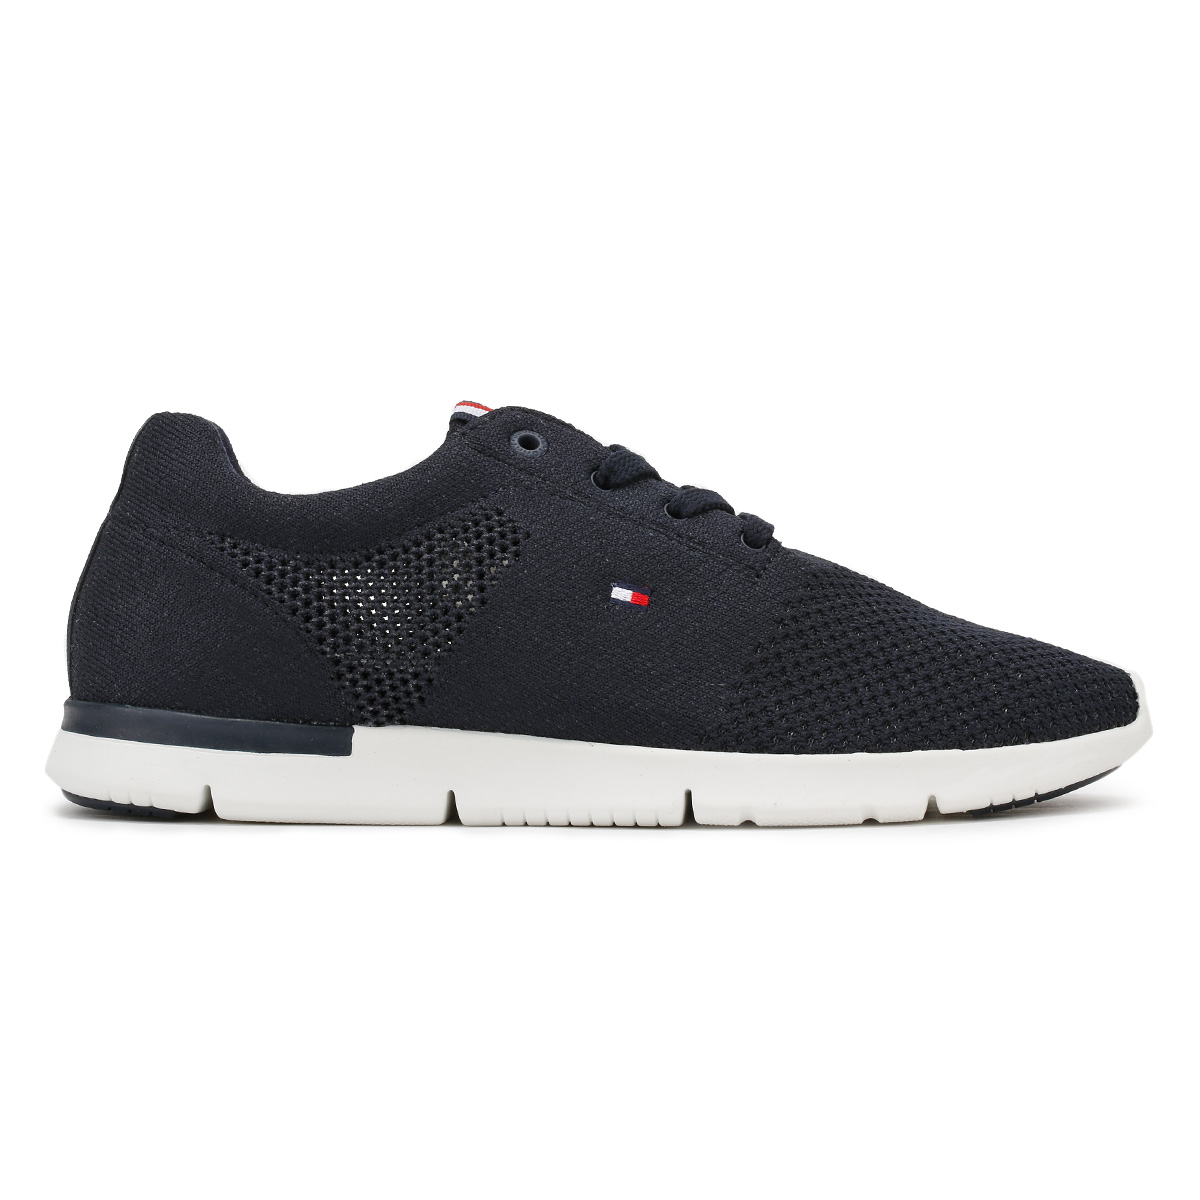 Hilfiger Shoes Uk